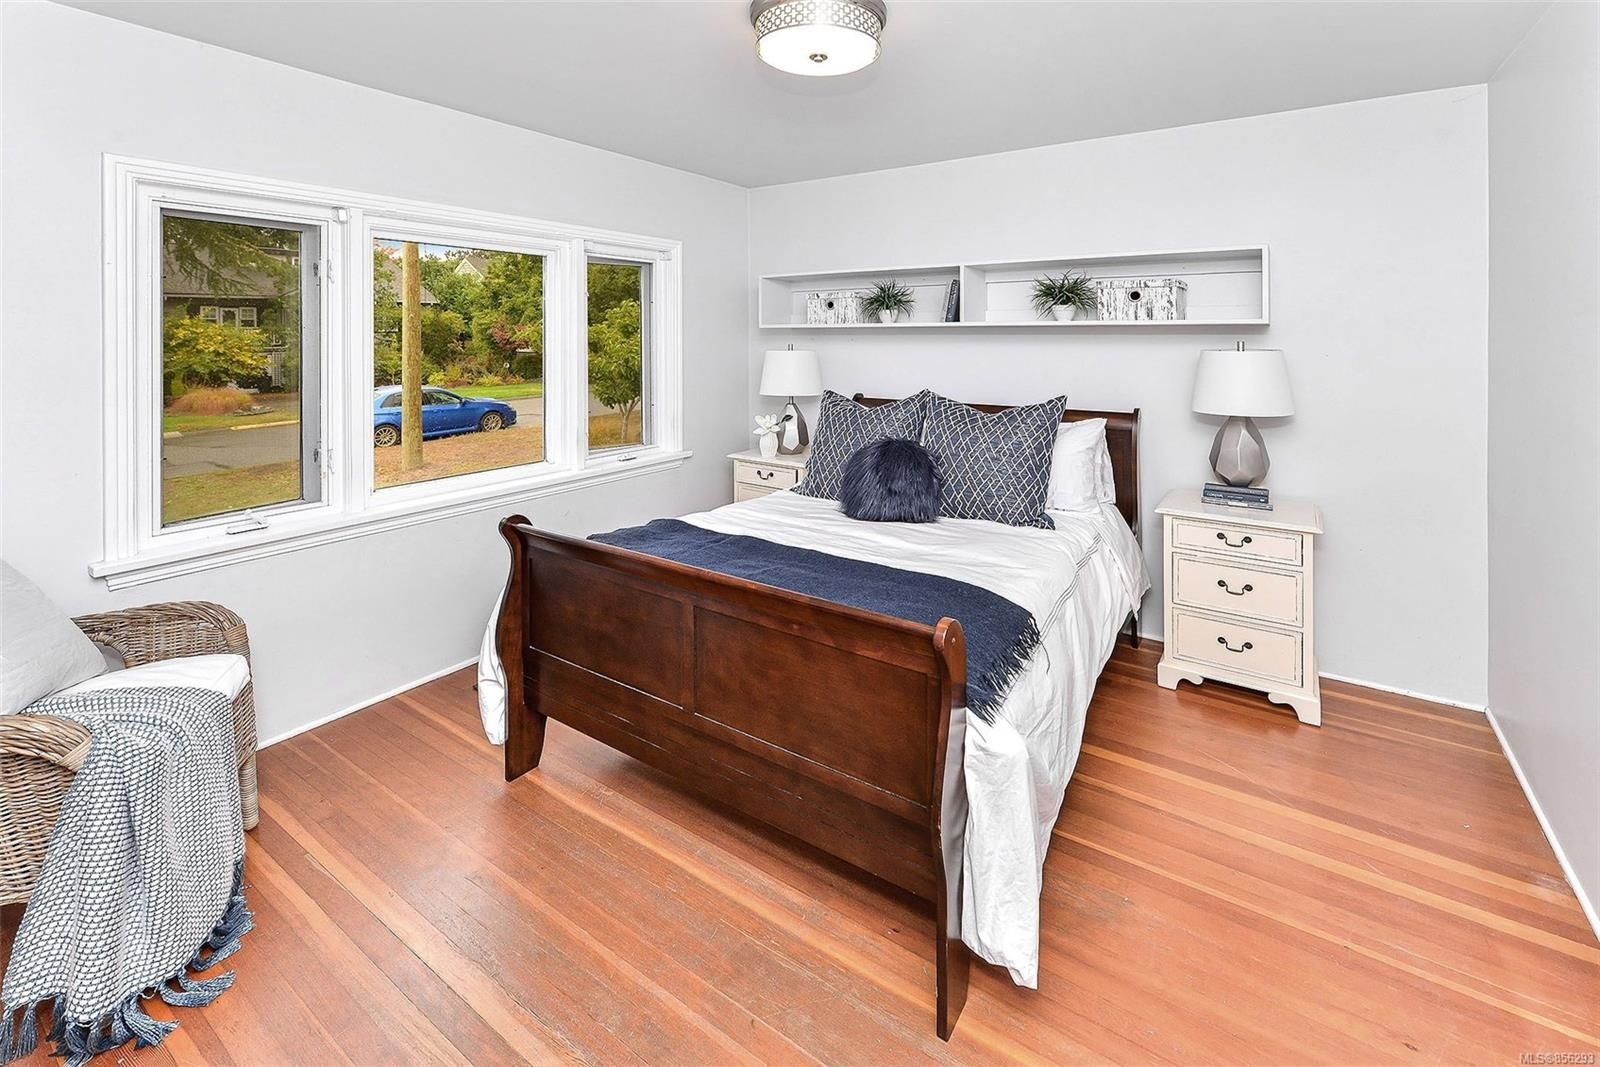 Photo 20: Photos: 1753 Armstrong Ave in : OB North Oak Bay House for sale (Oak Bay)  : MLS®# 856293